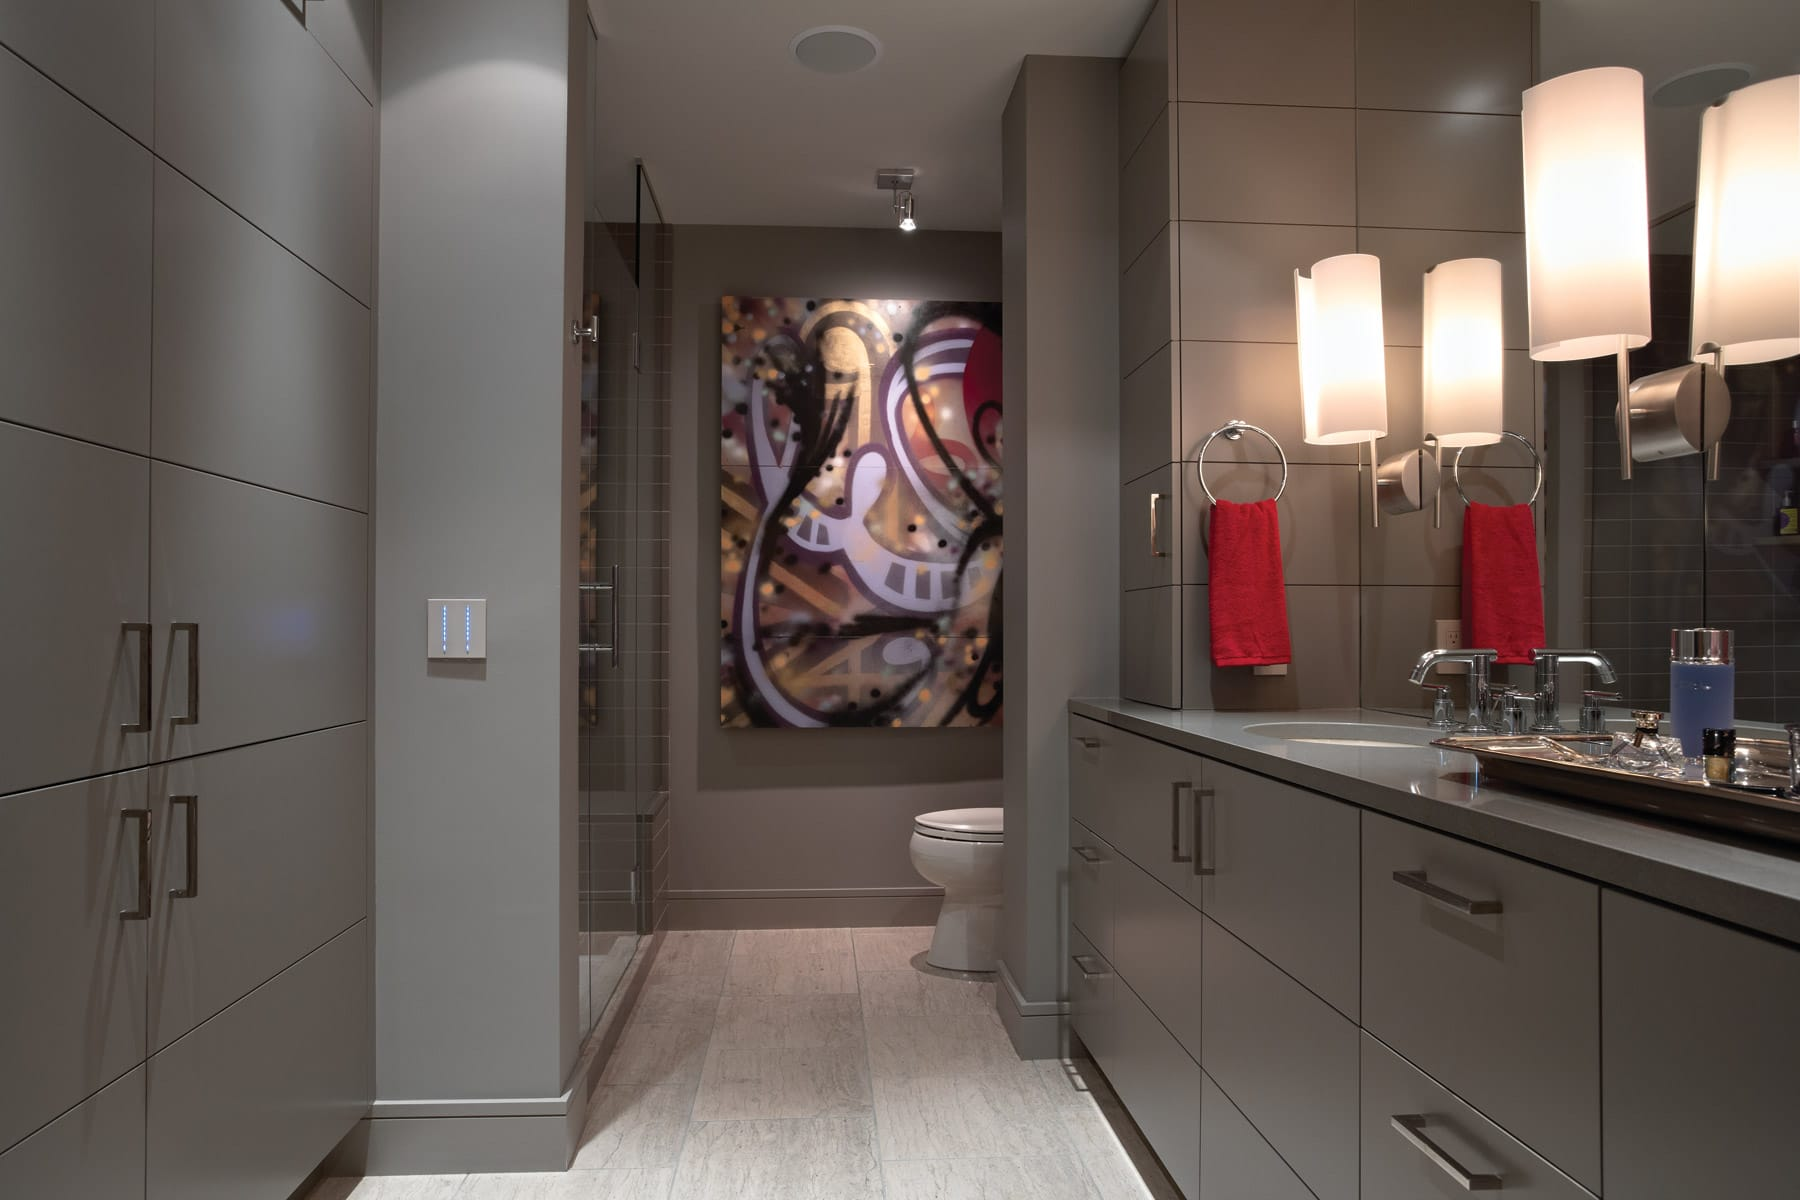 Exceptional-Condominium-Grey-Red-Master-Bath-Minneapolis-interior-designer.jpeg